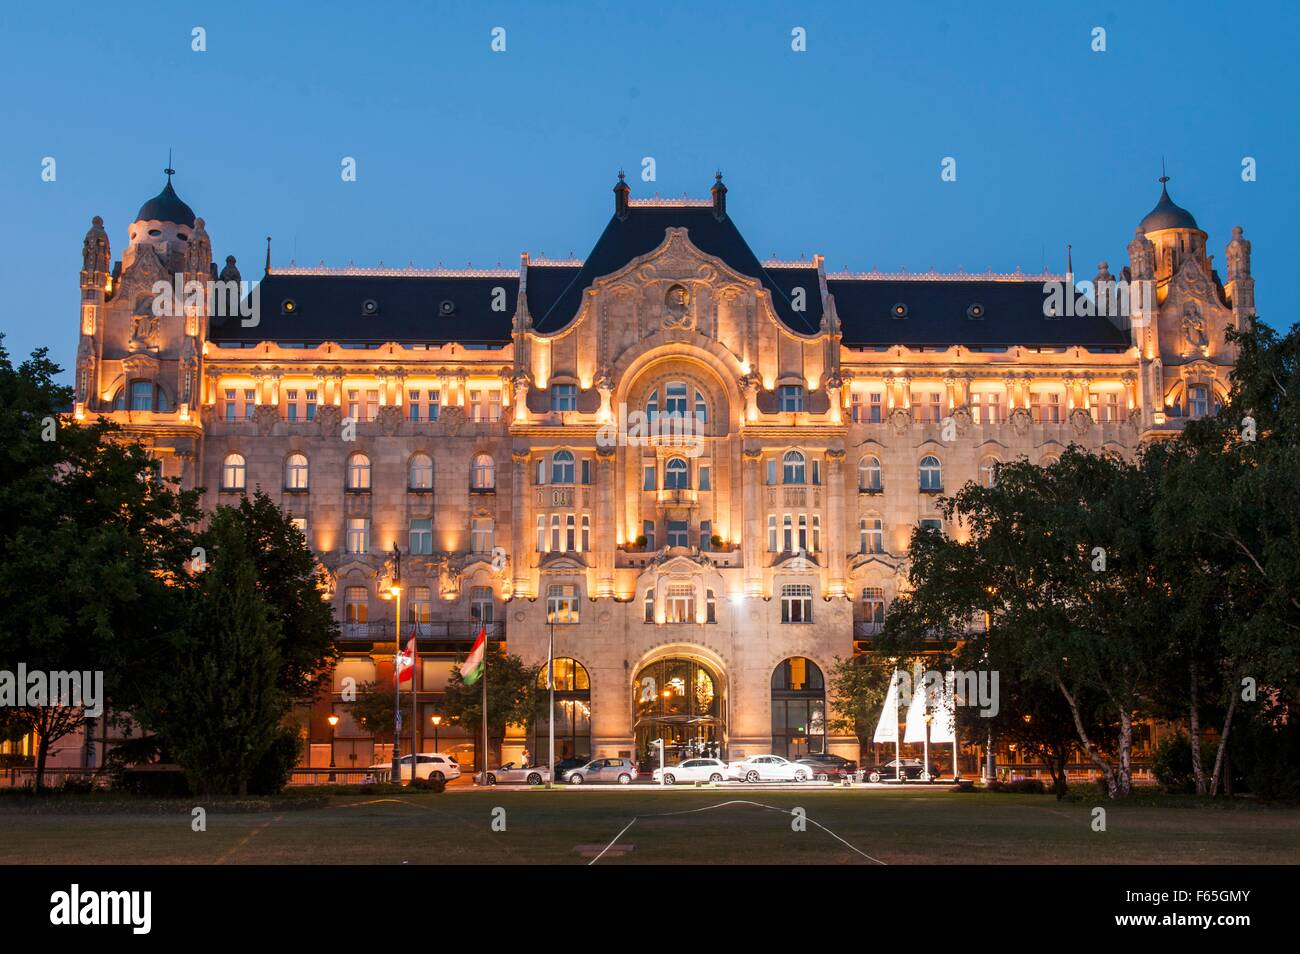 A view of the 'Four Seasons' Hotel in the elegant Gresham Palace in Budapest, Hungary Stock Photo